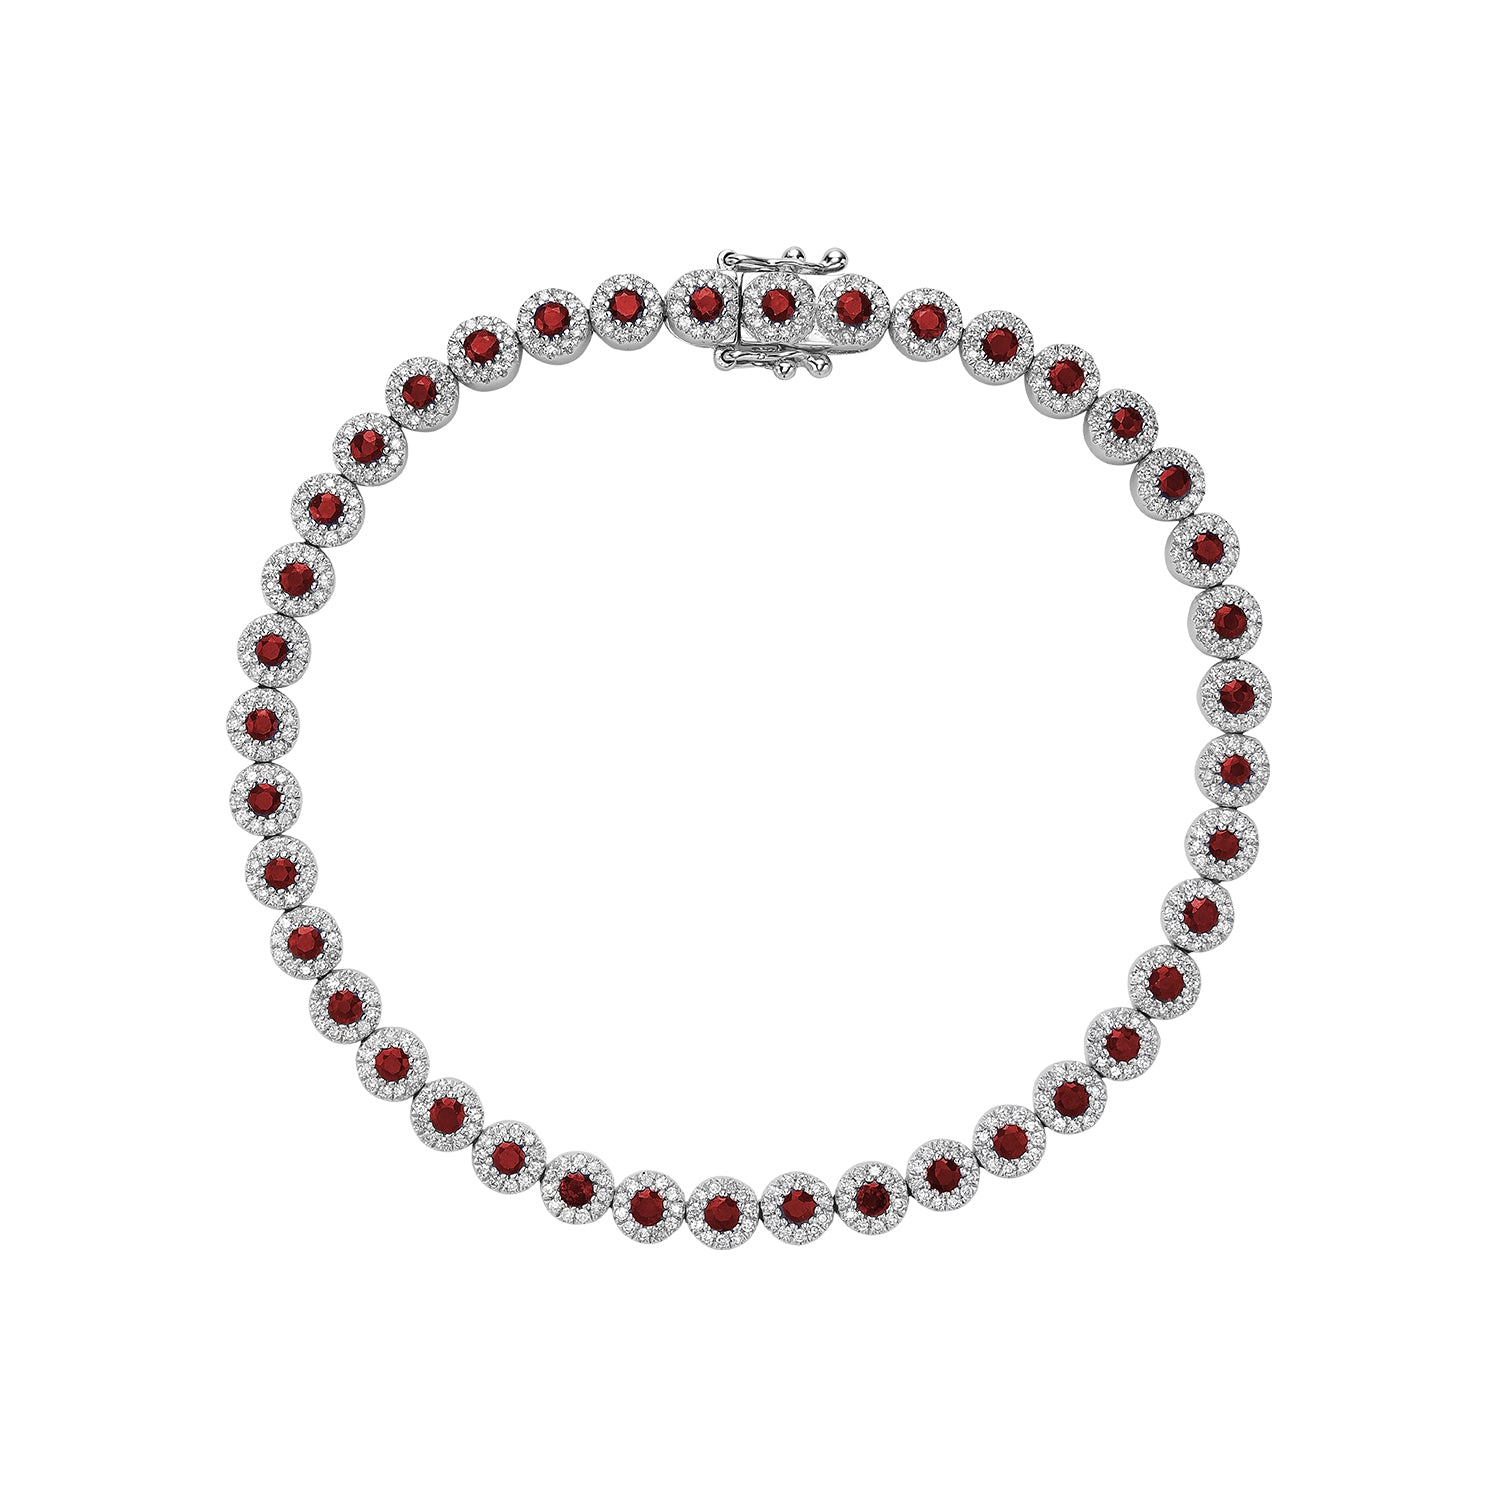 Hemsleys Collection 14KW Round Ruby & Diamond Round Halo Tennis Bracelet